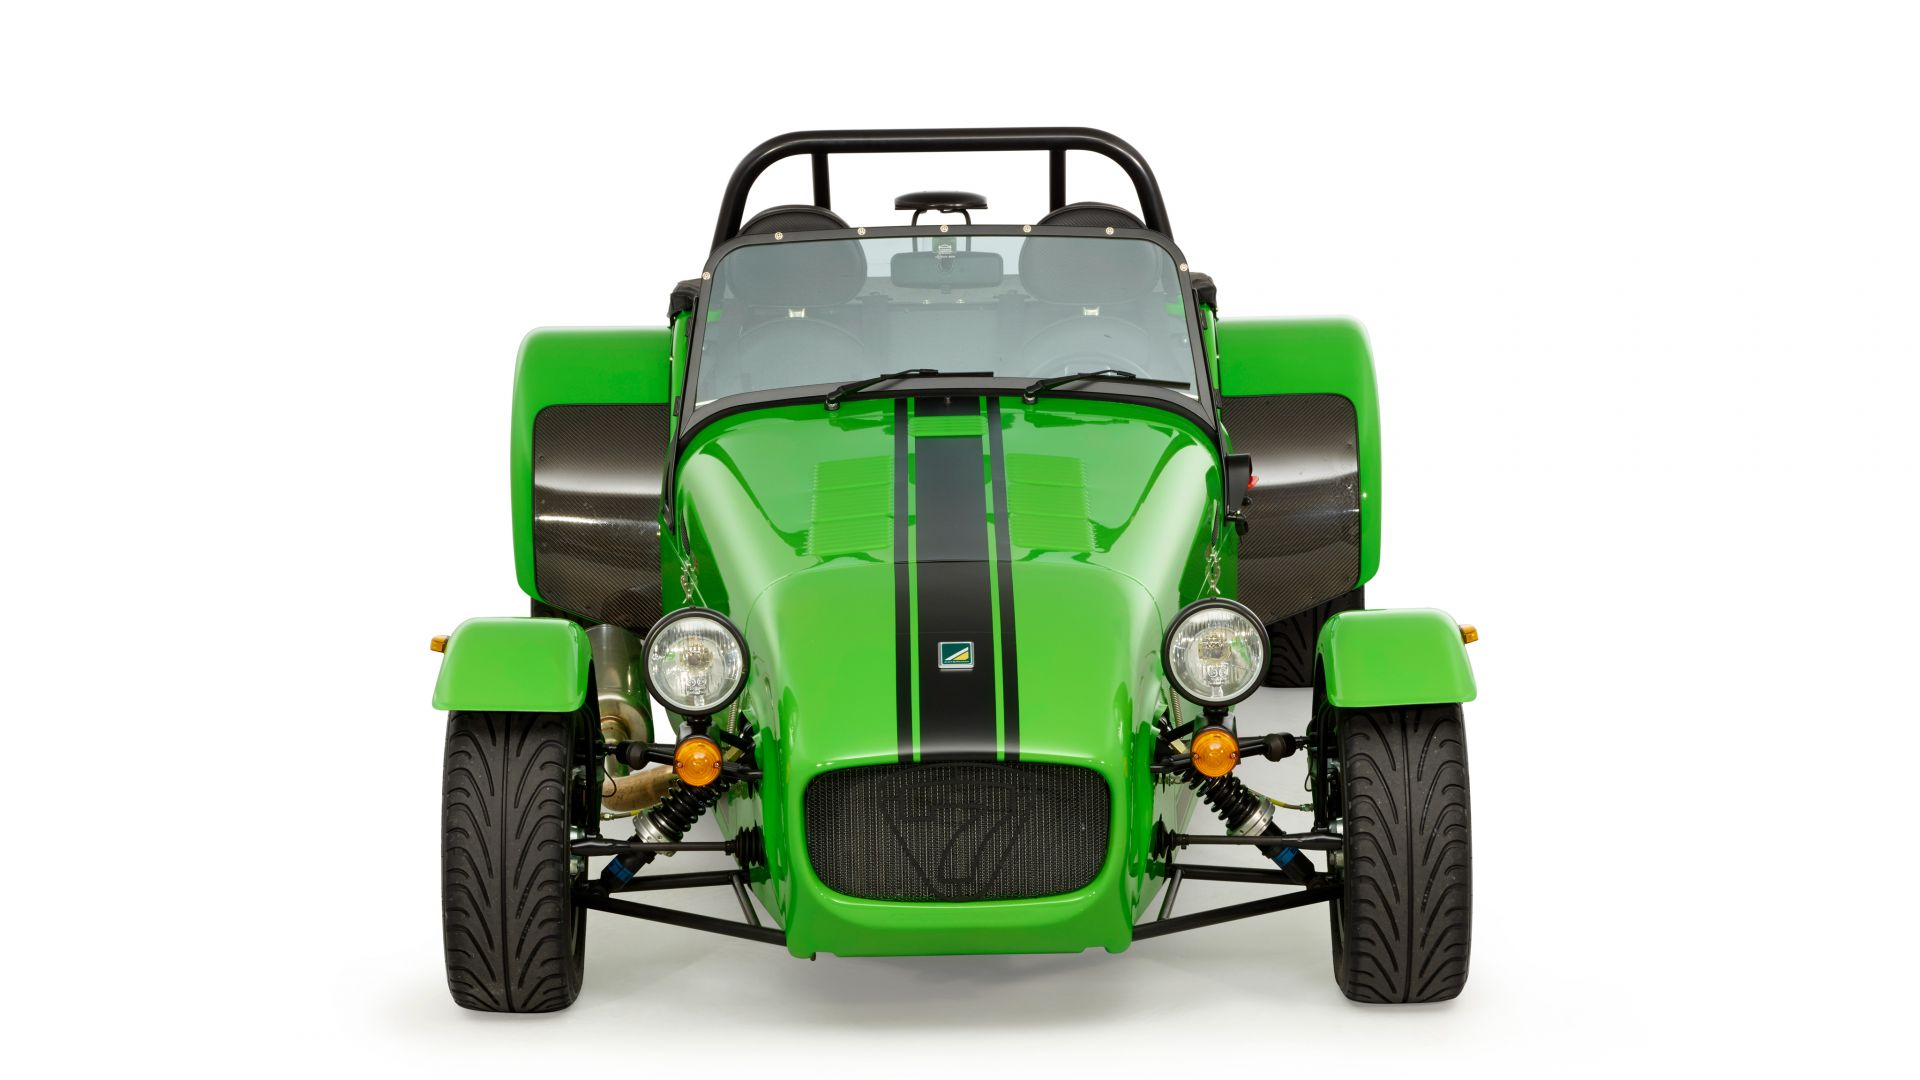 Катерхем 7 275, зеленый, Caterham seven 275 r, caterham 7, green (horizontal)